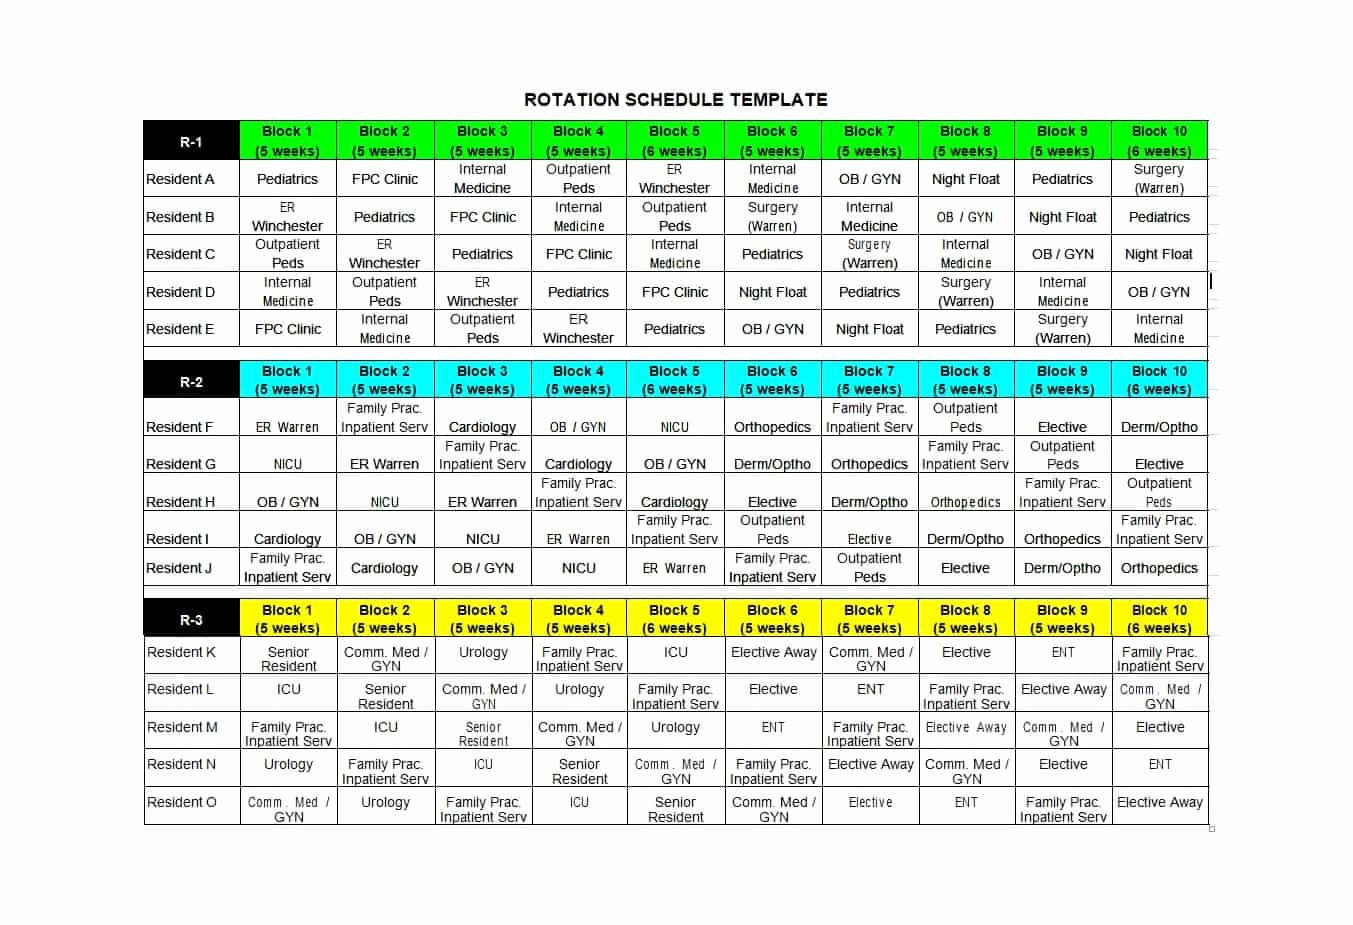 Rotating Overtime Schedule Template Awesome 50 Free Rotating Schedule Templates for Your Pany